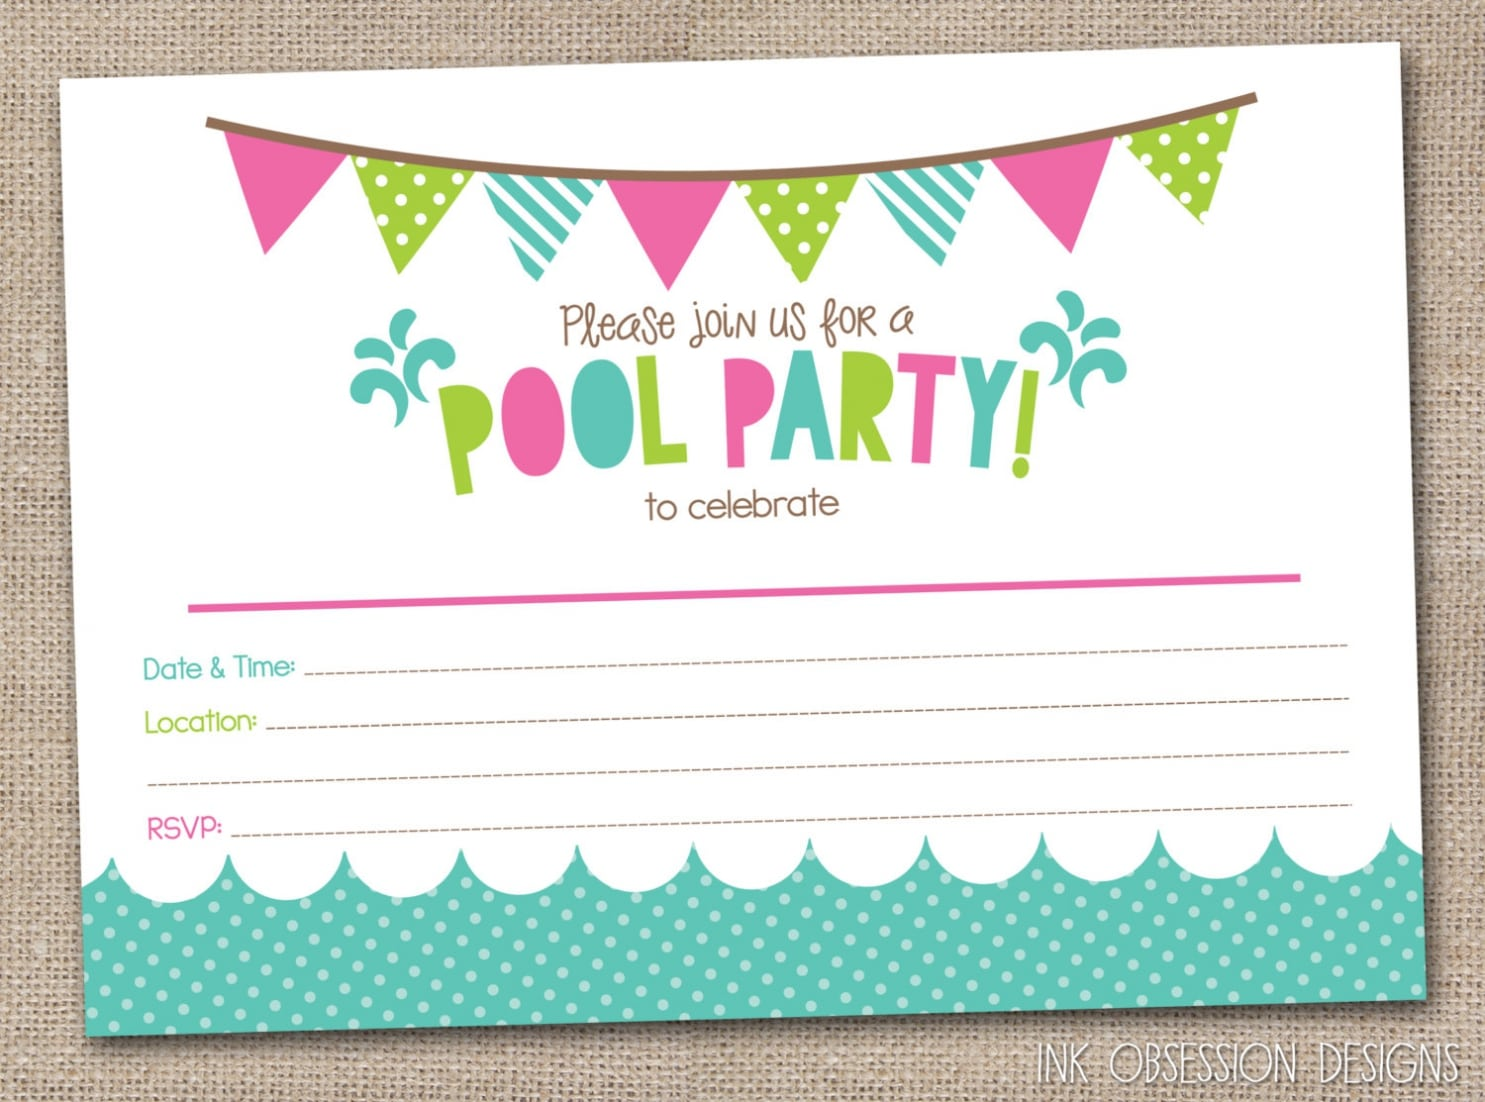 Party Invitation Templates Pool Party Invitation Template